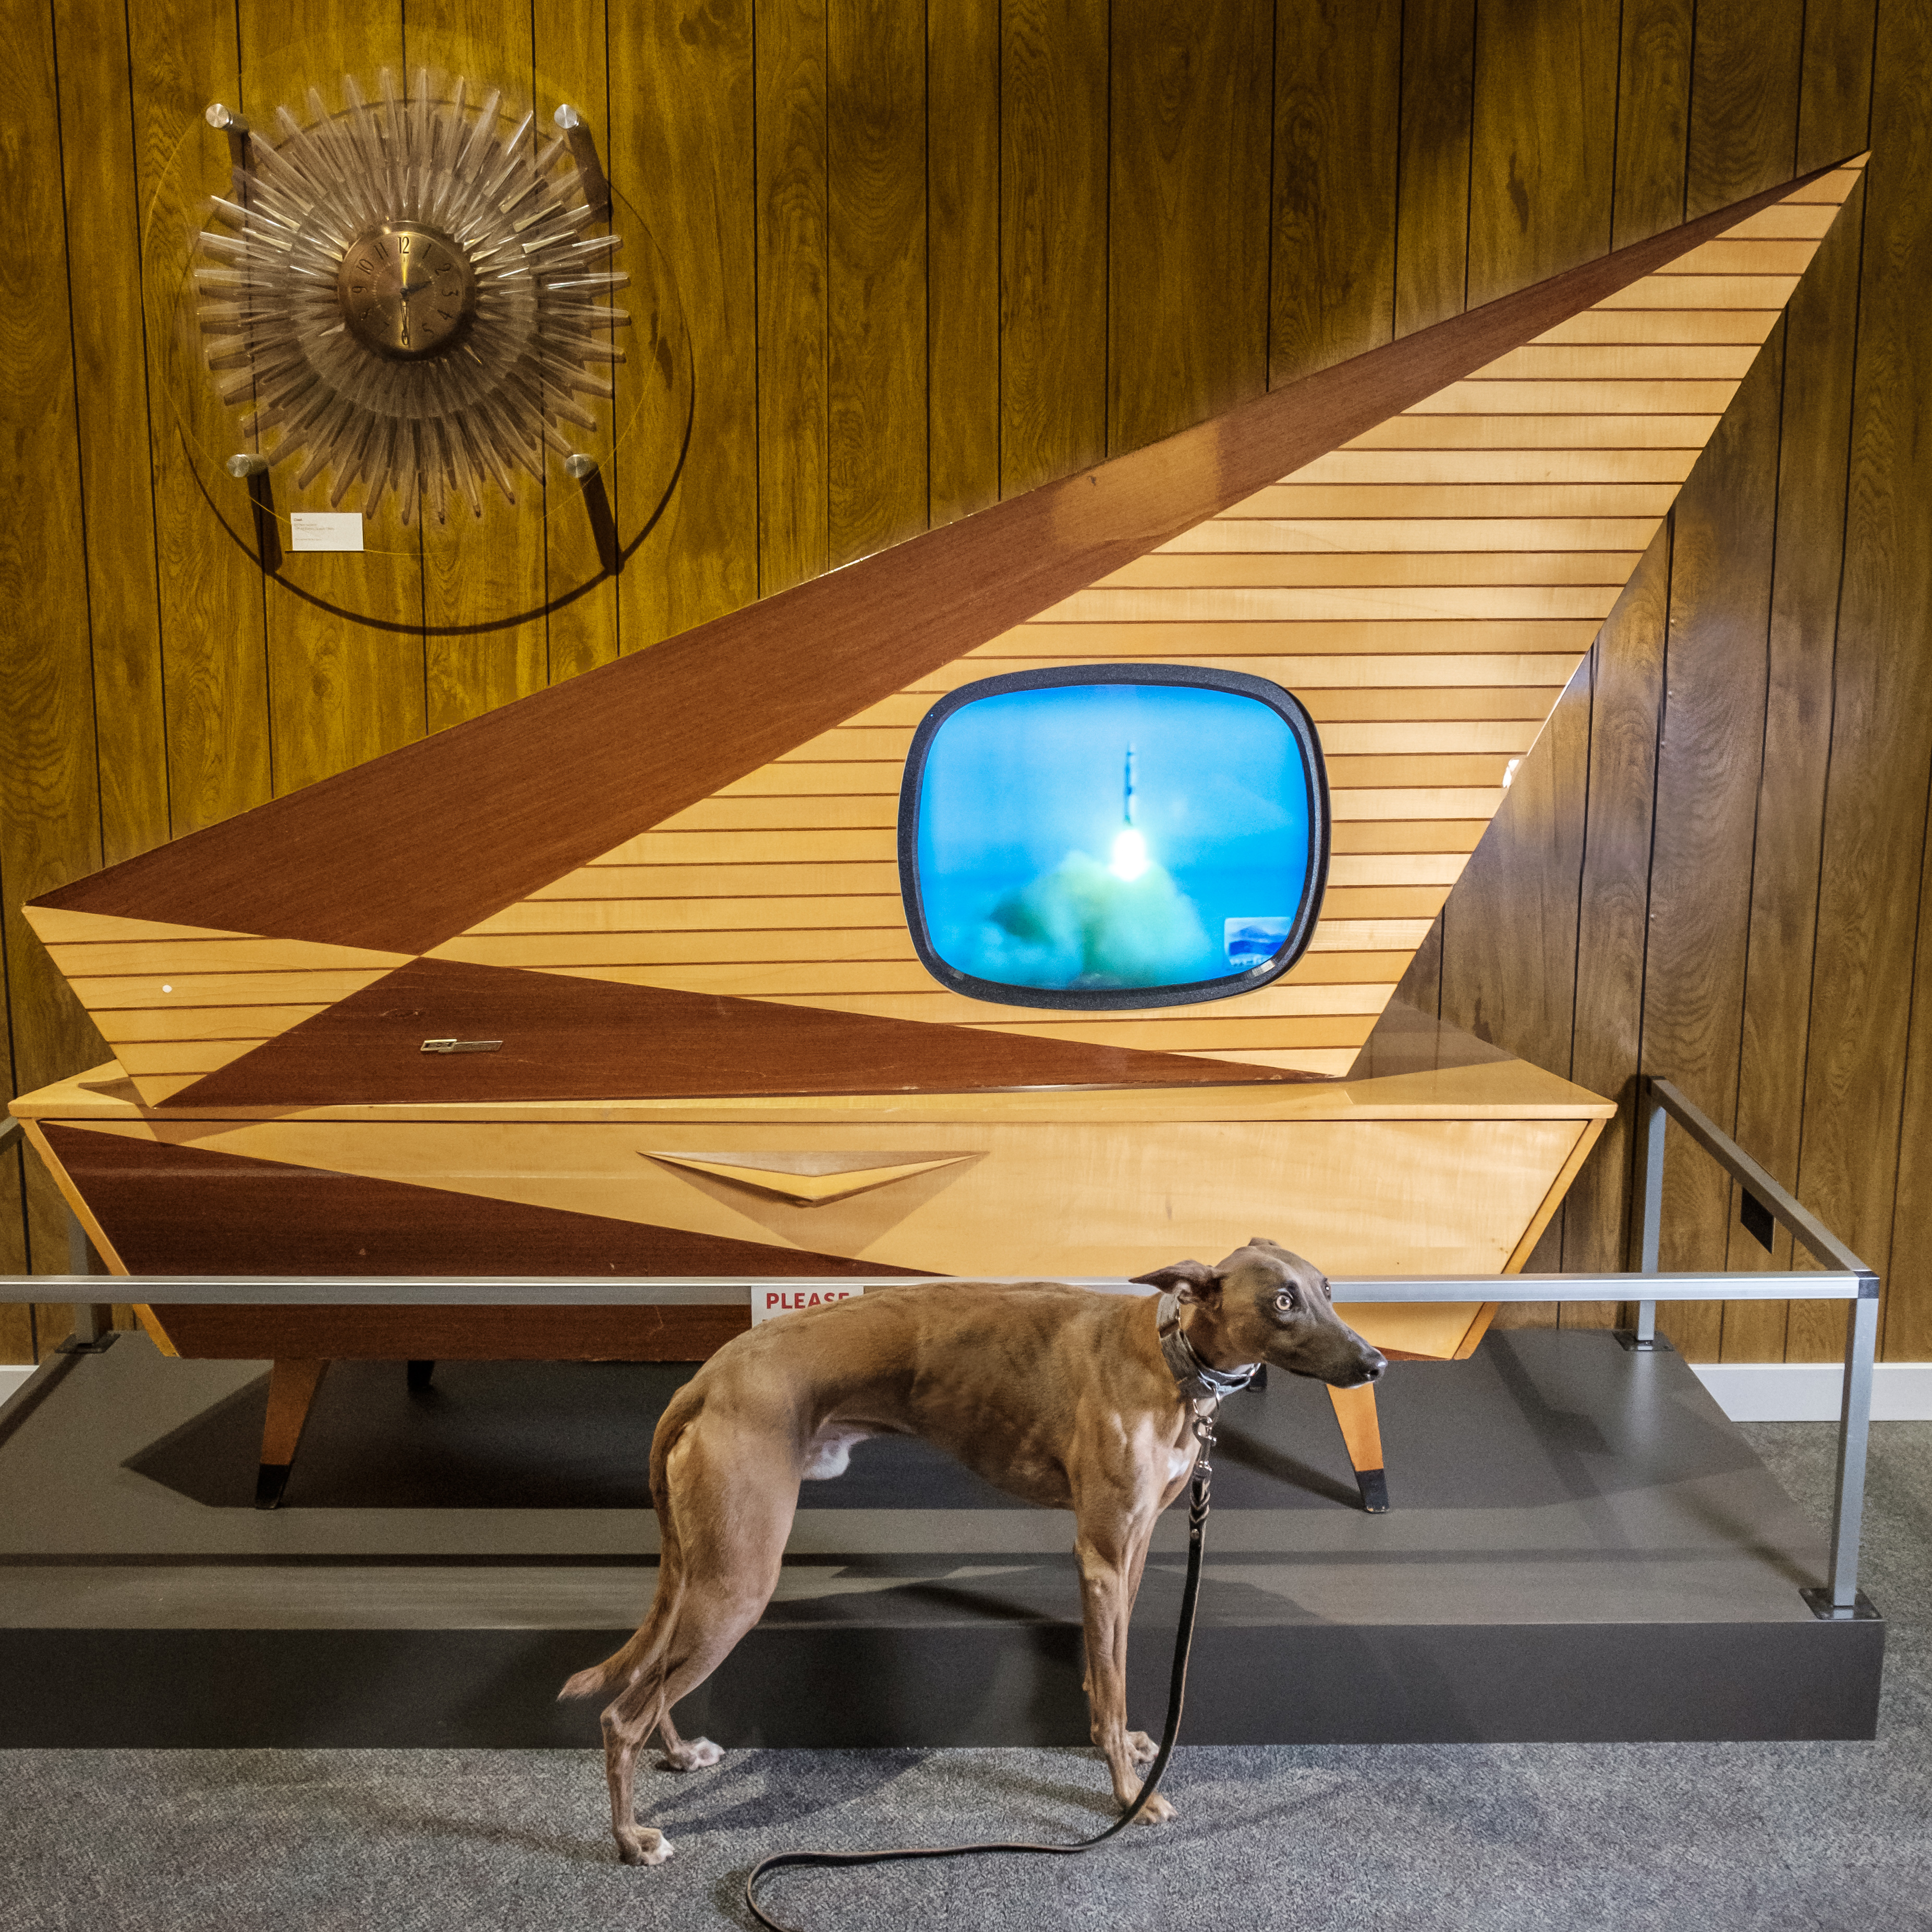 Kuiper poses with a large vintage triangle-shaped wooden TV. It is displaying a rocket launch.